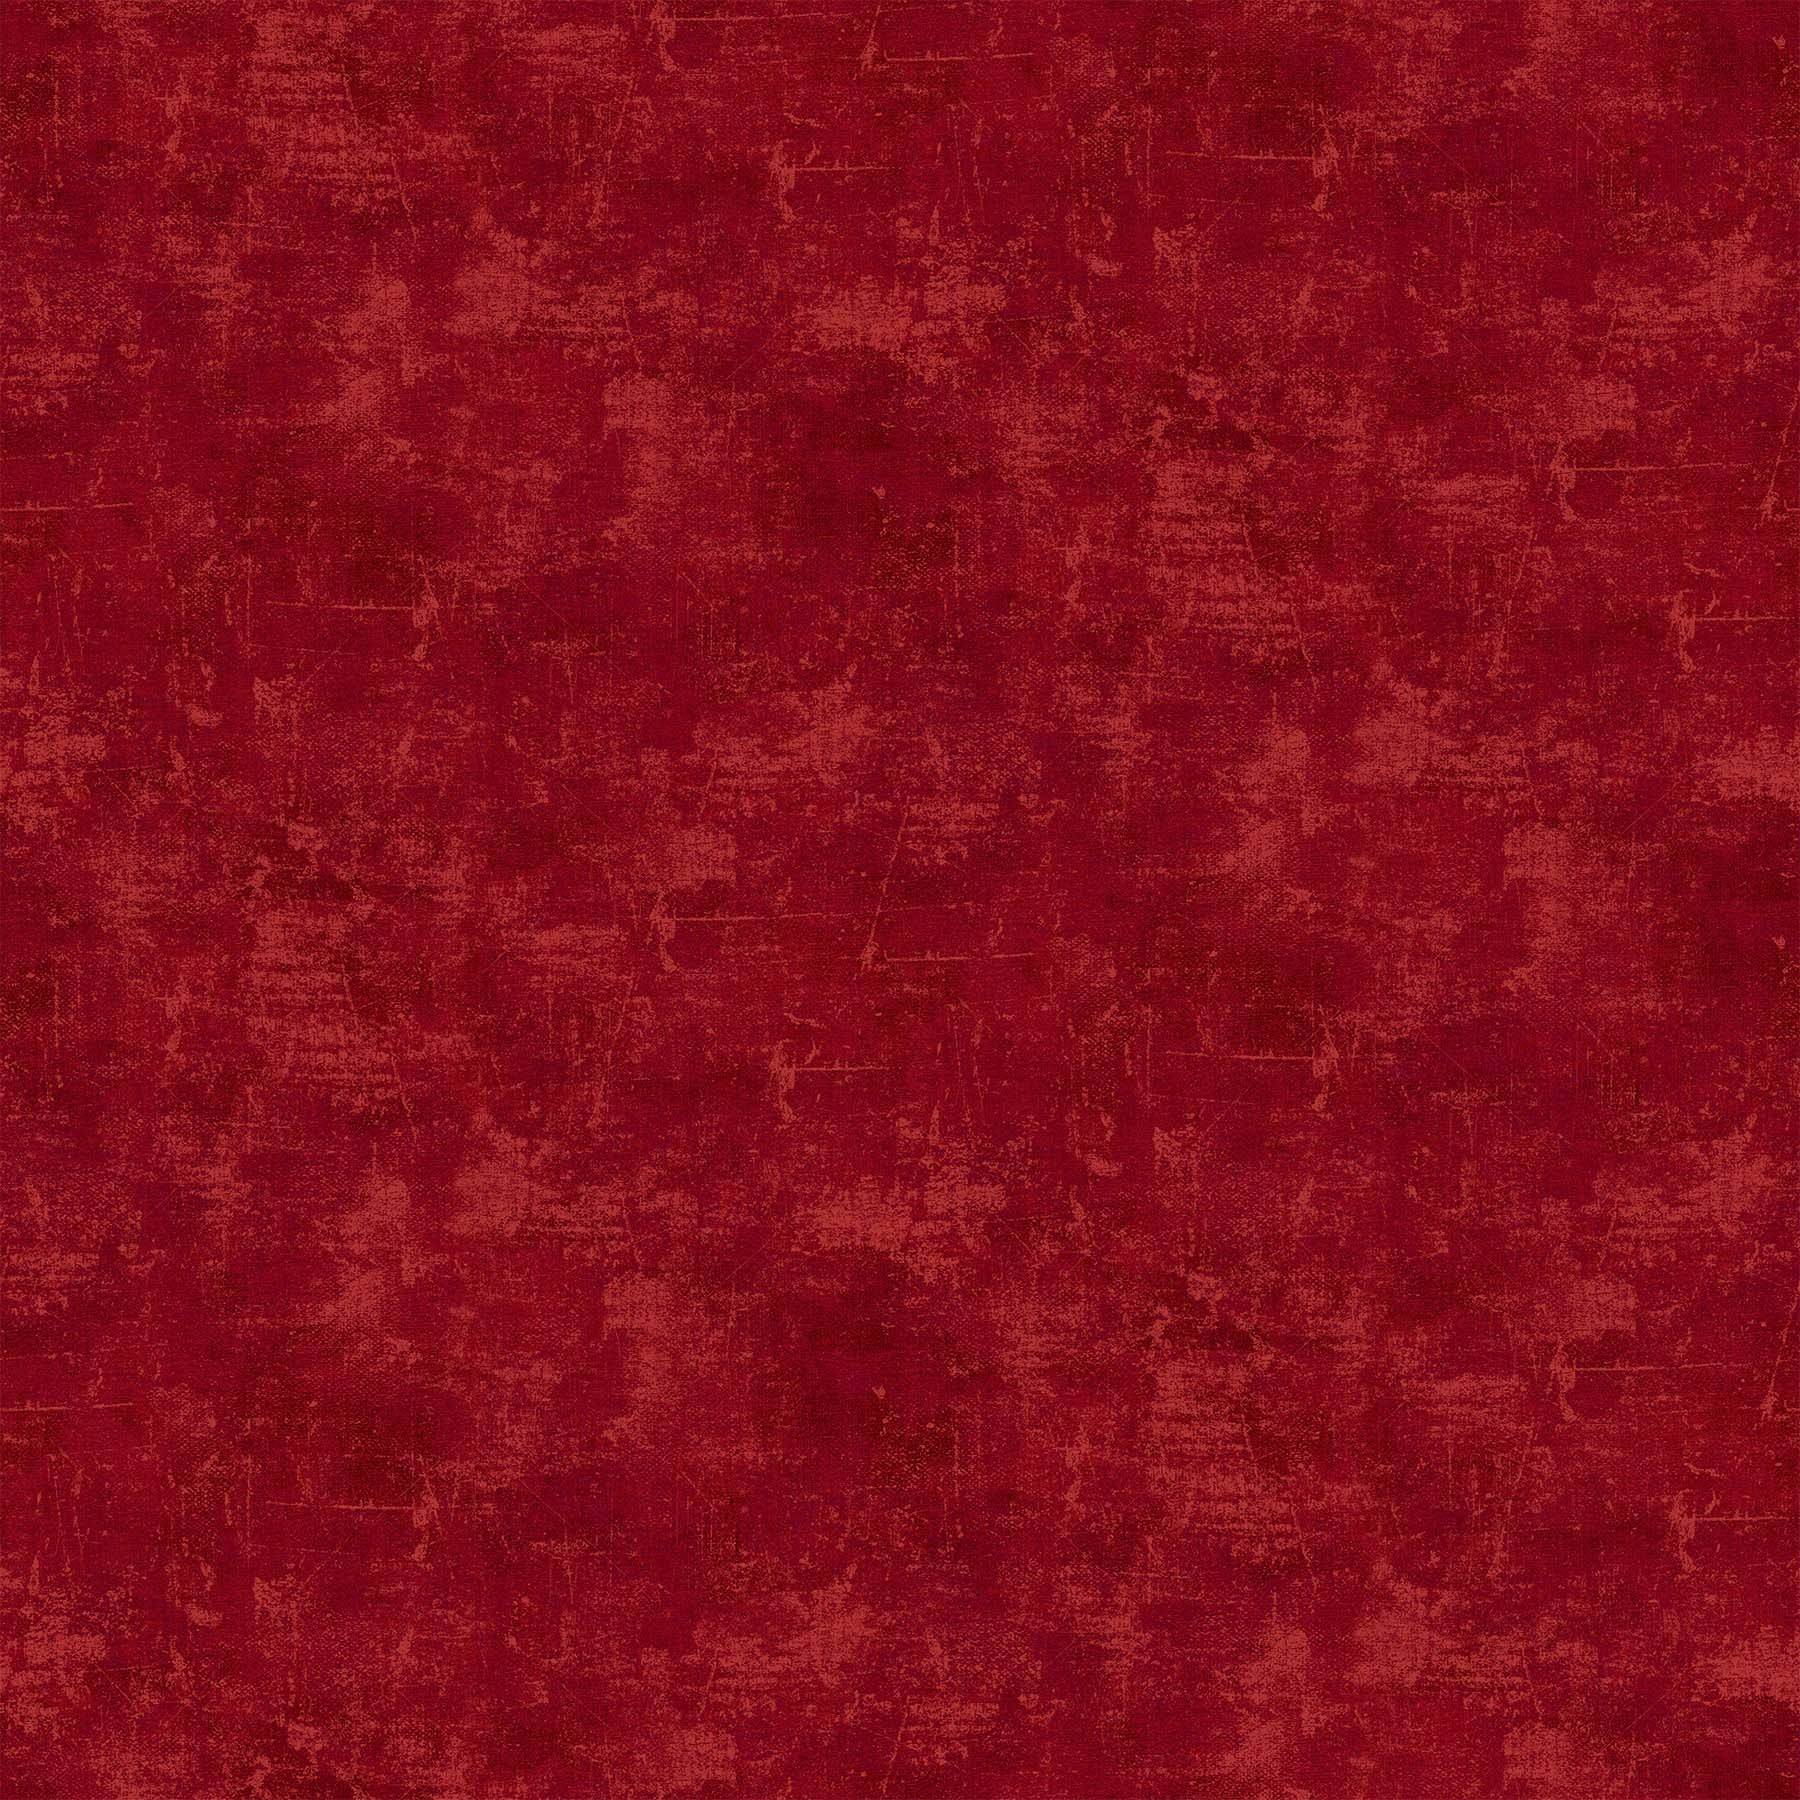 Canvas Basics Merlot Fabric